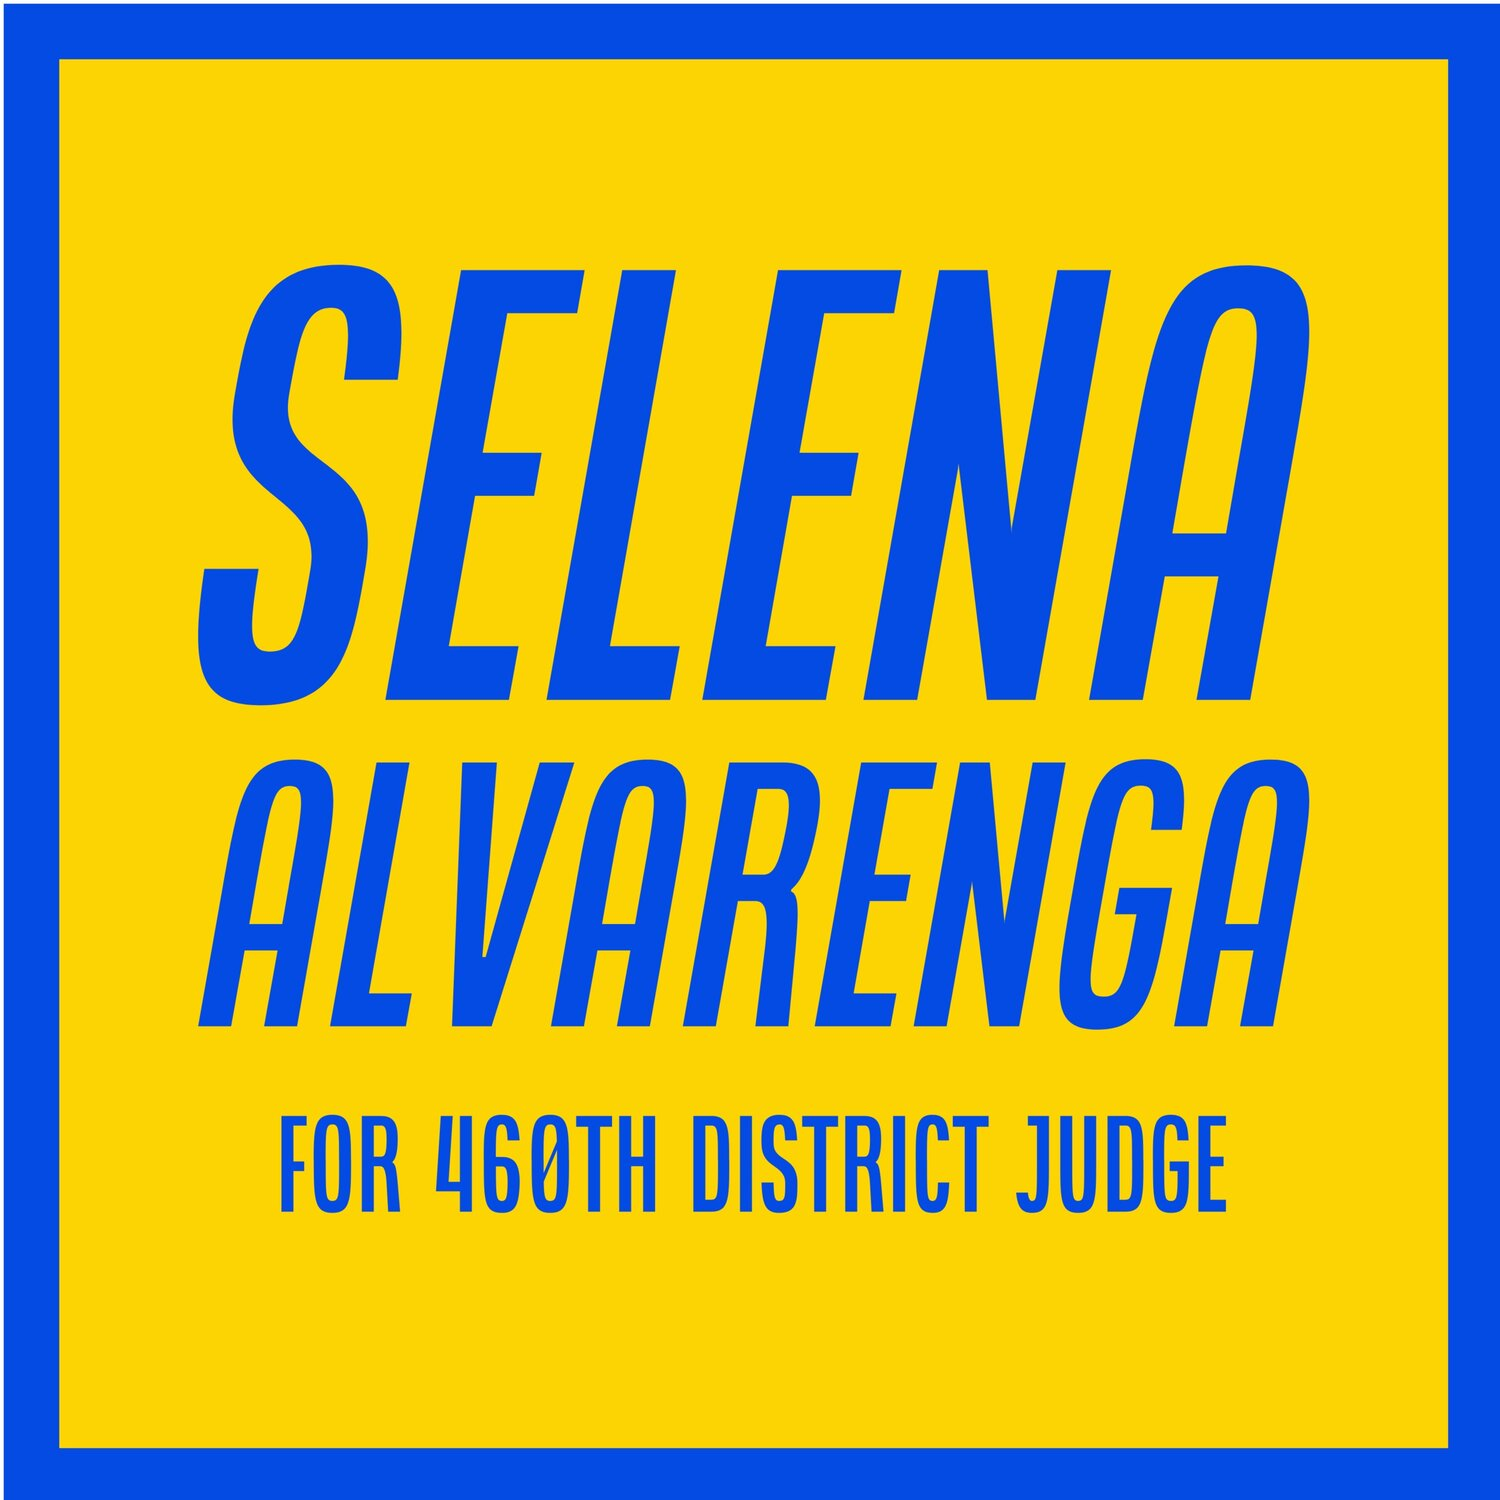 Selena Alvarenga for 460th District Court Judge